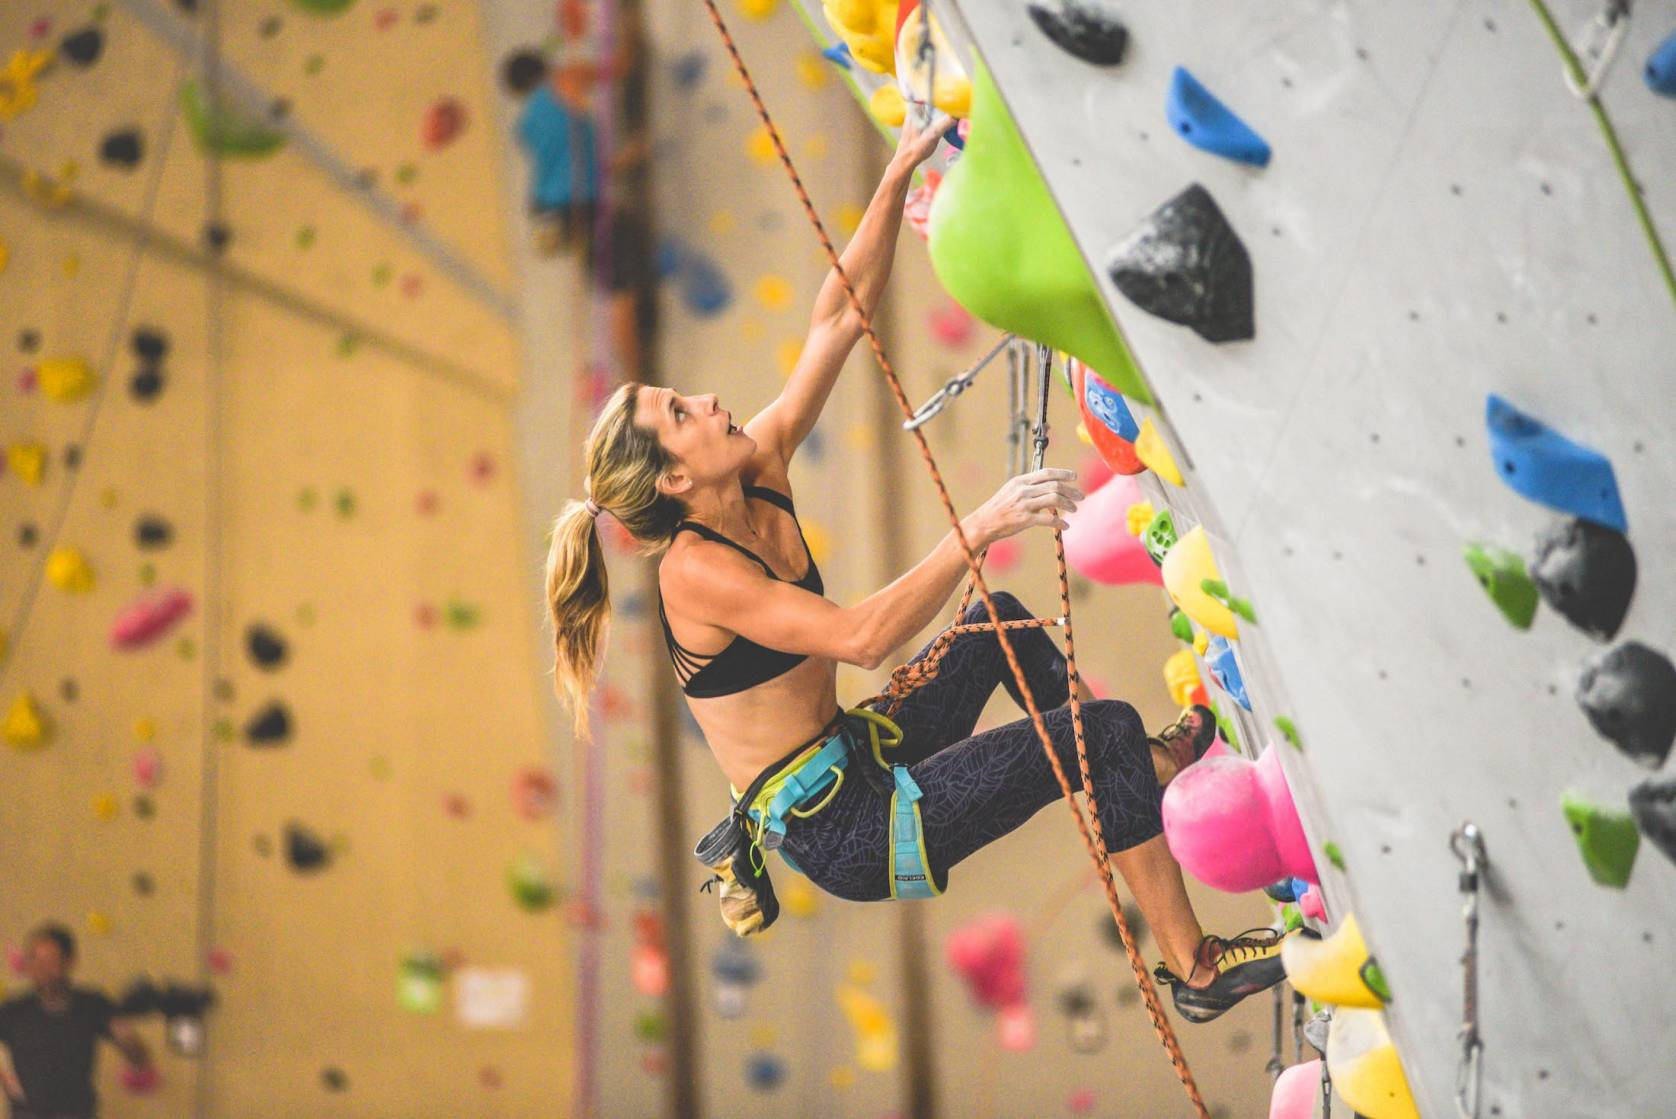 climbing at Movement